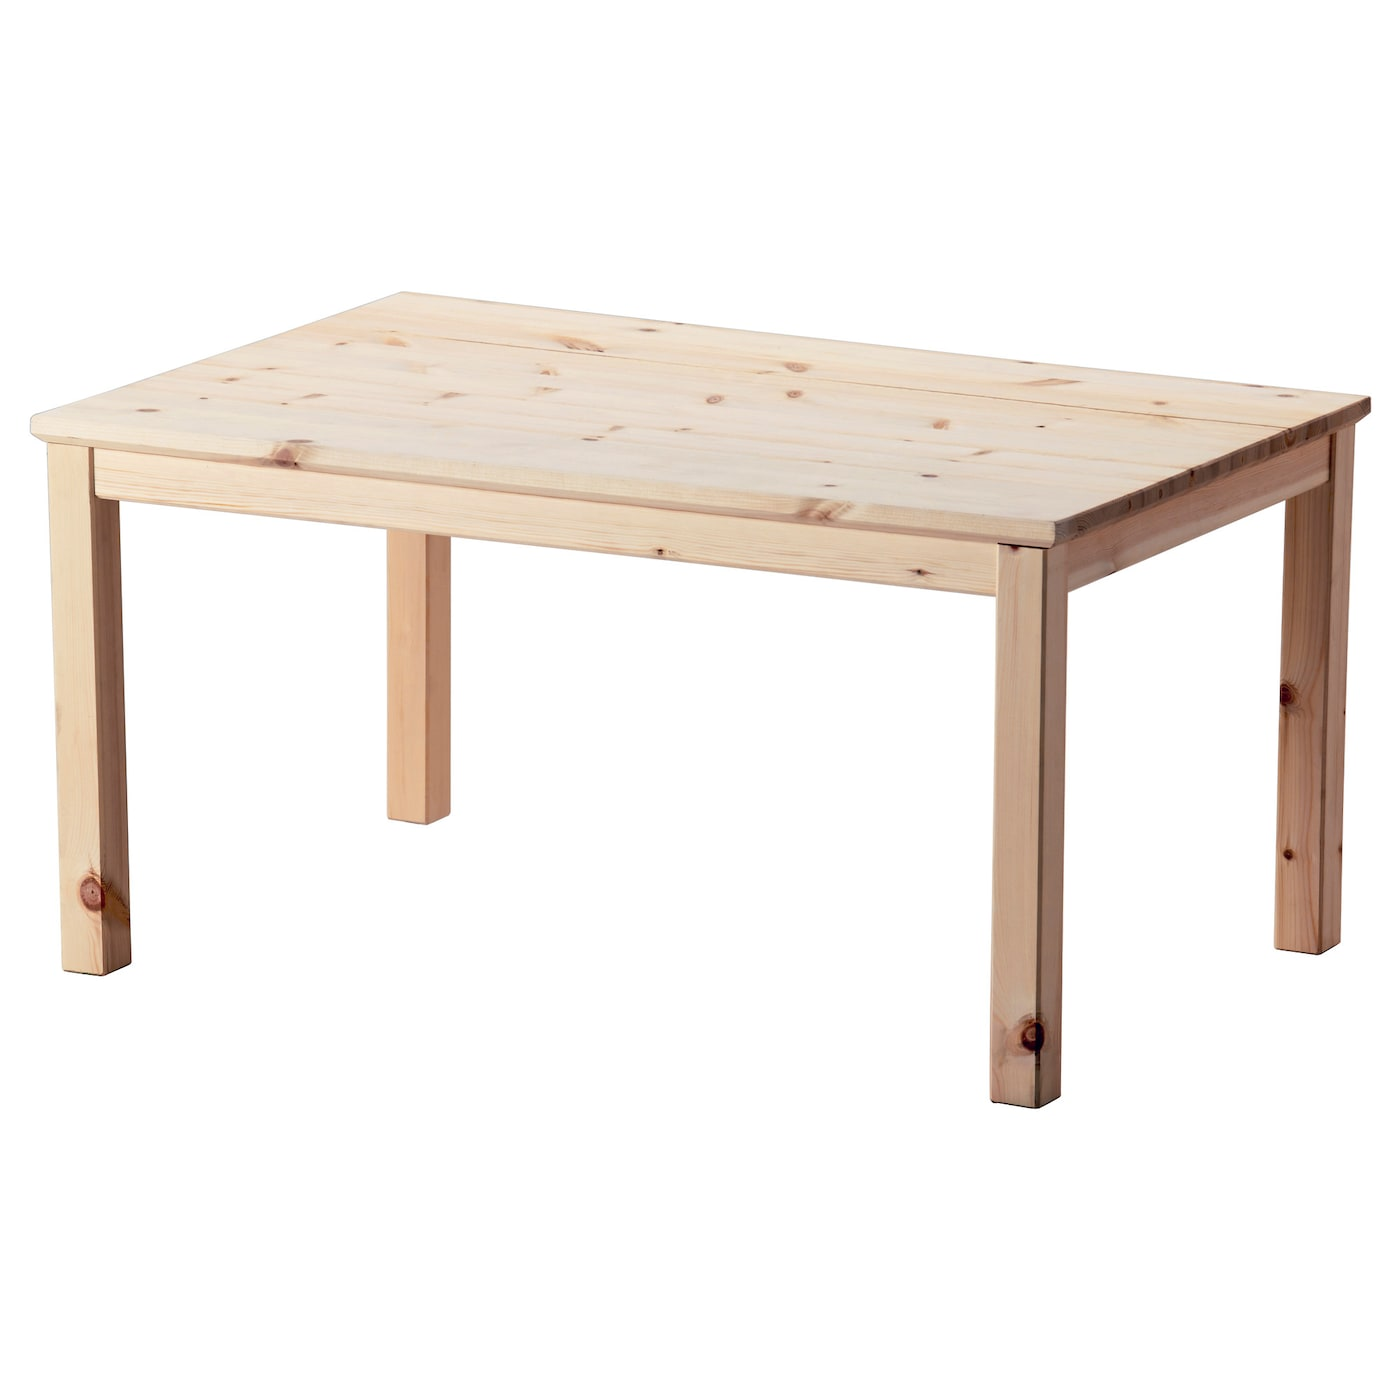 NORNS Coffee Table Pine 89x59 Cm IKEA